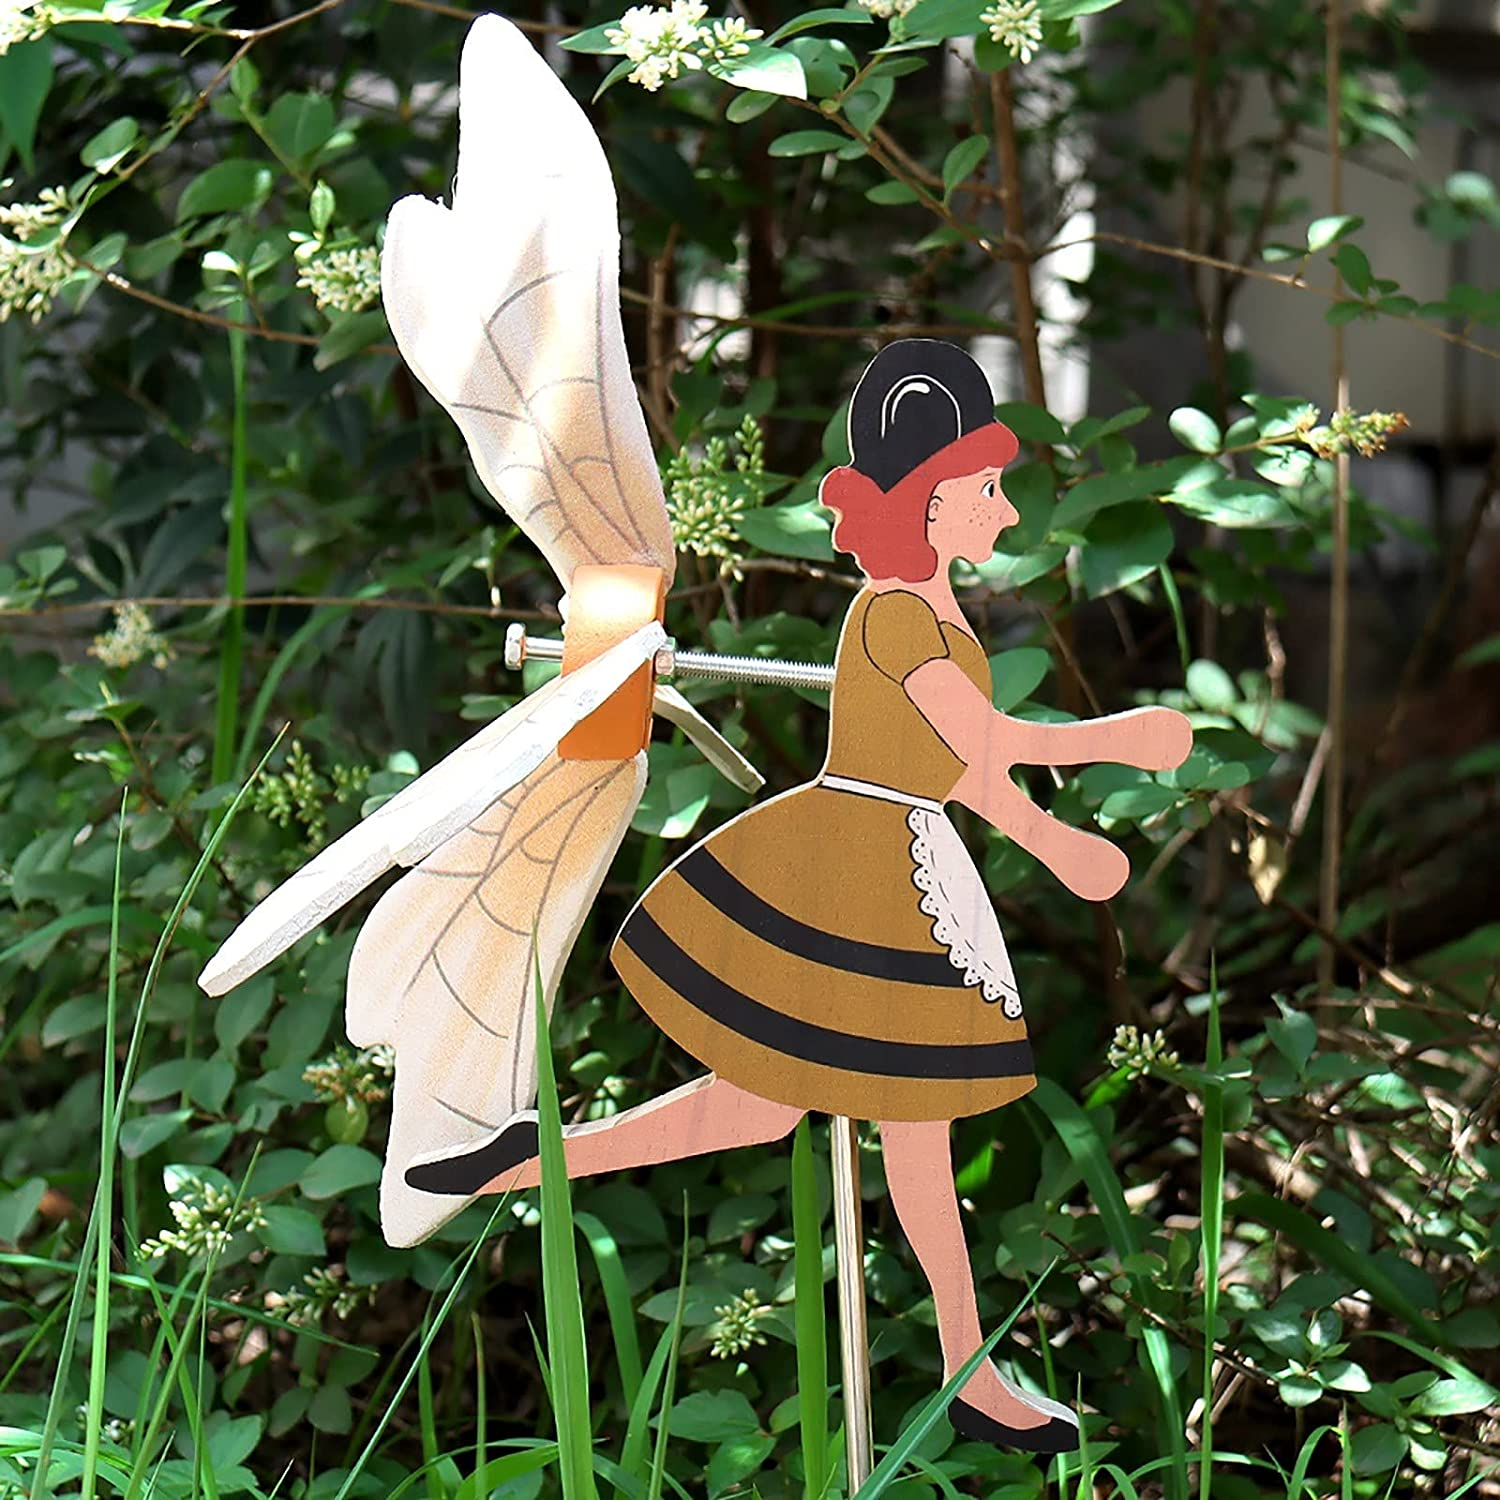 Miss Bee Garden Decor Whirligigs Wind Spinners Garden Spinner with Stable Wood Pile Flying Bird Garden Windmill Art Outdoor Decor Outdoor Patio Ornaments Outdoor Lawn Yard Patio Decor Accessories